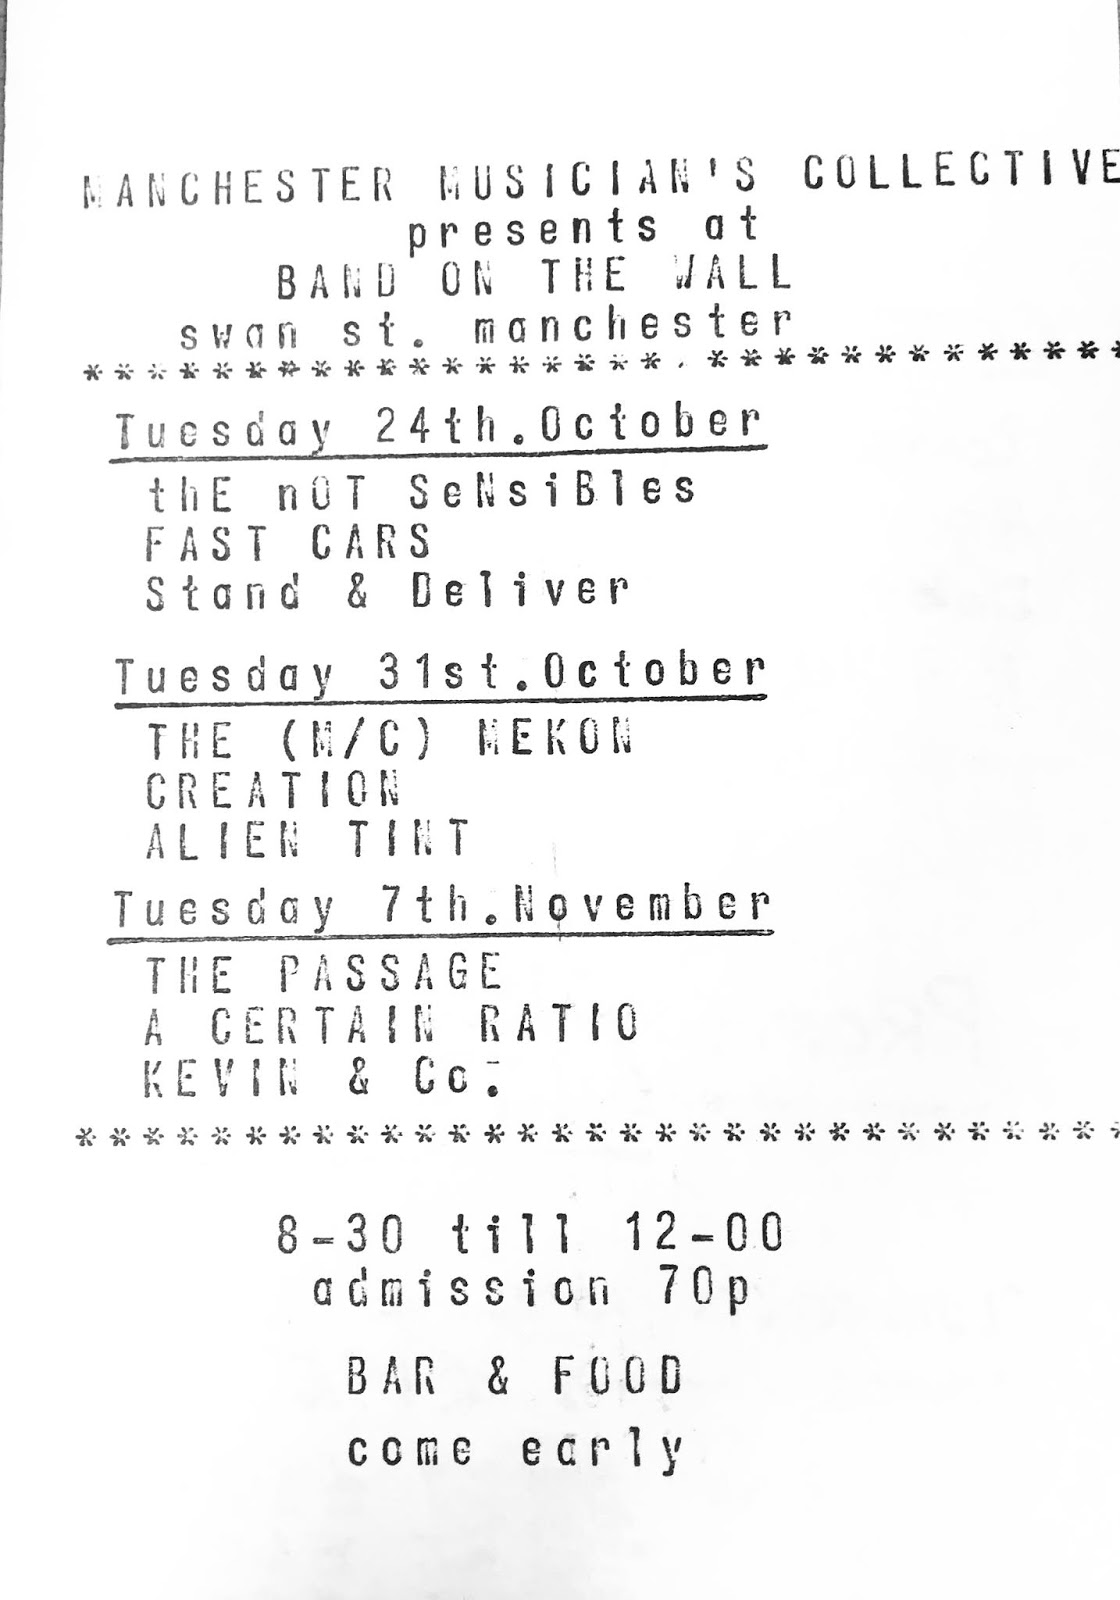 ACR Gigography 7 November 1978, Band on the Wall, Manchester